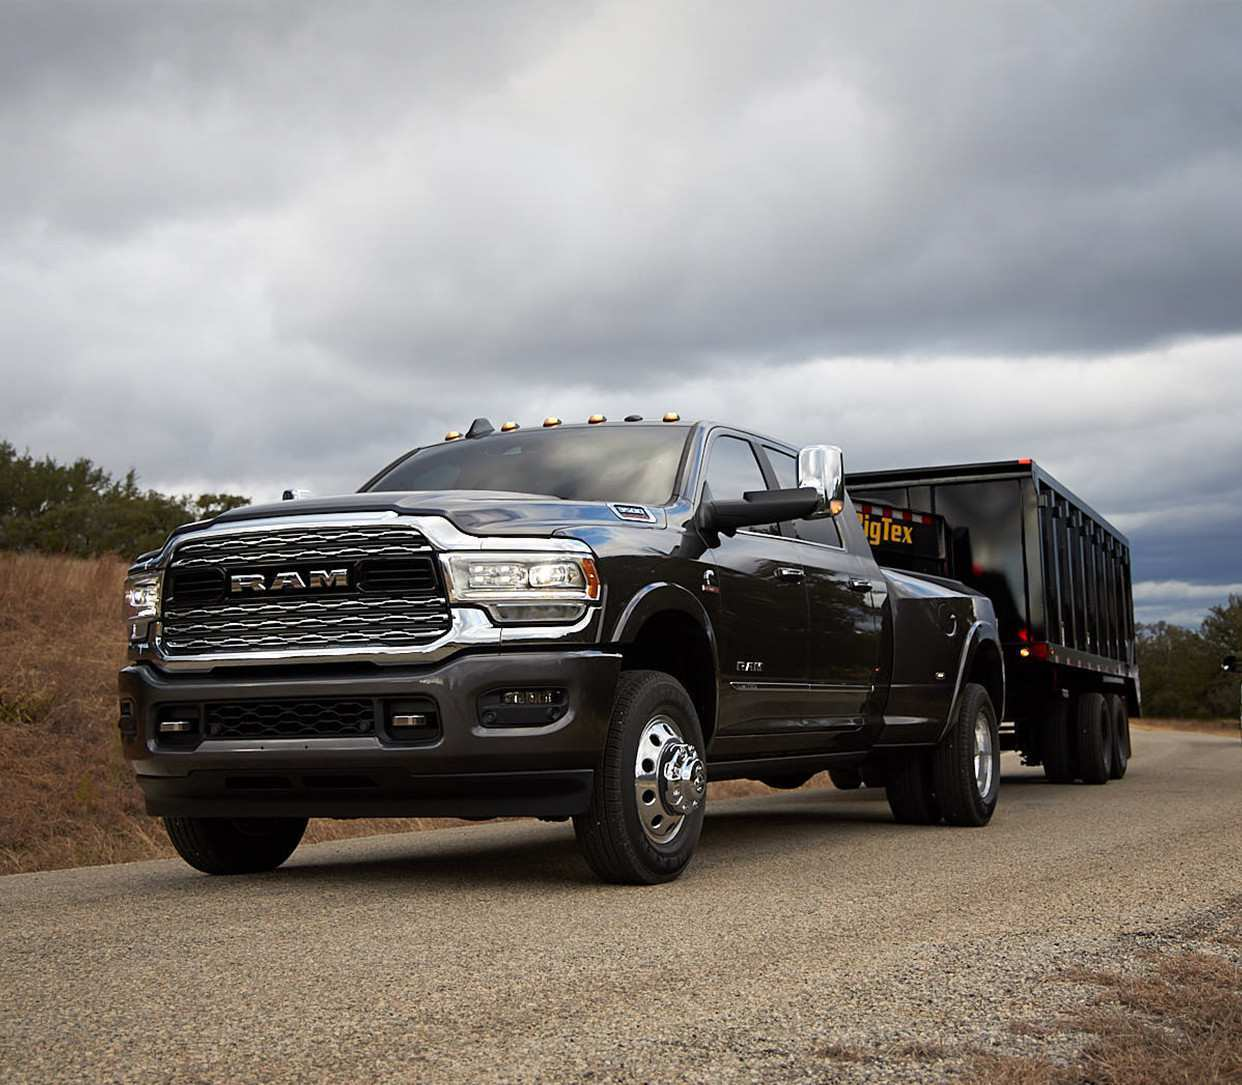 81 All New 2019 Dodge 3500 Towing Capacity Prices